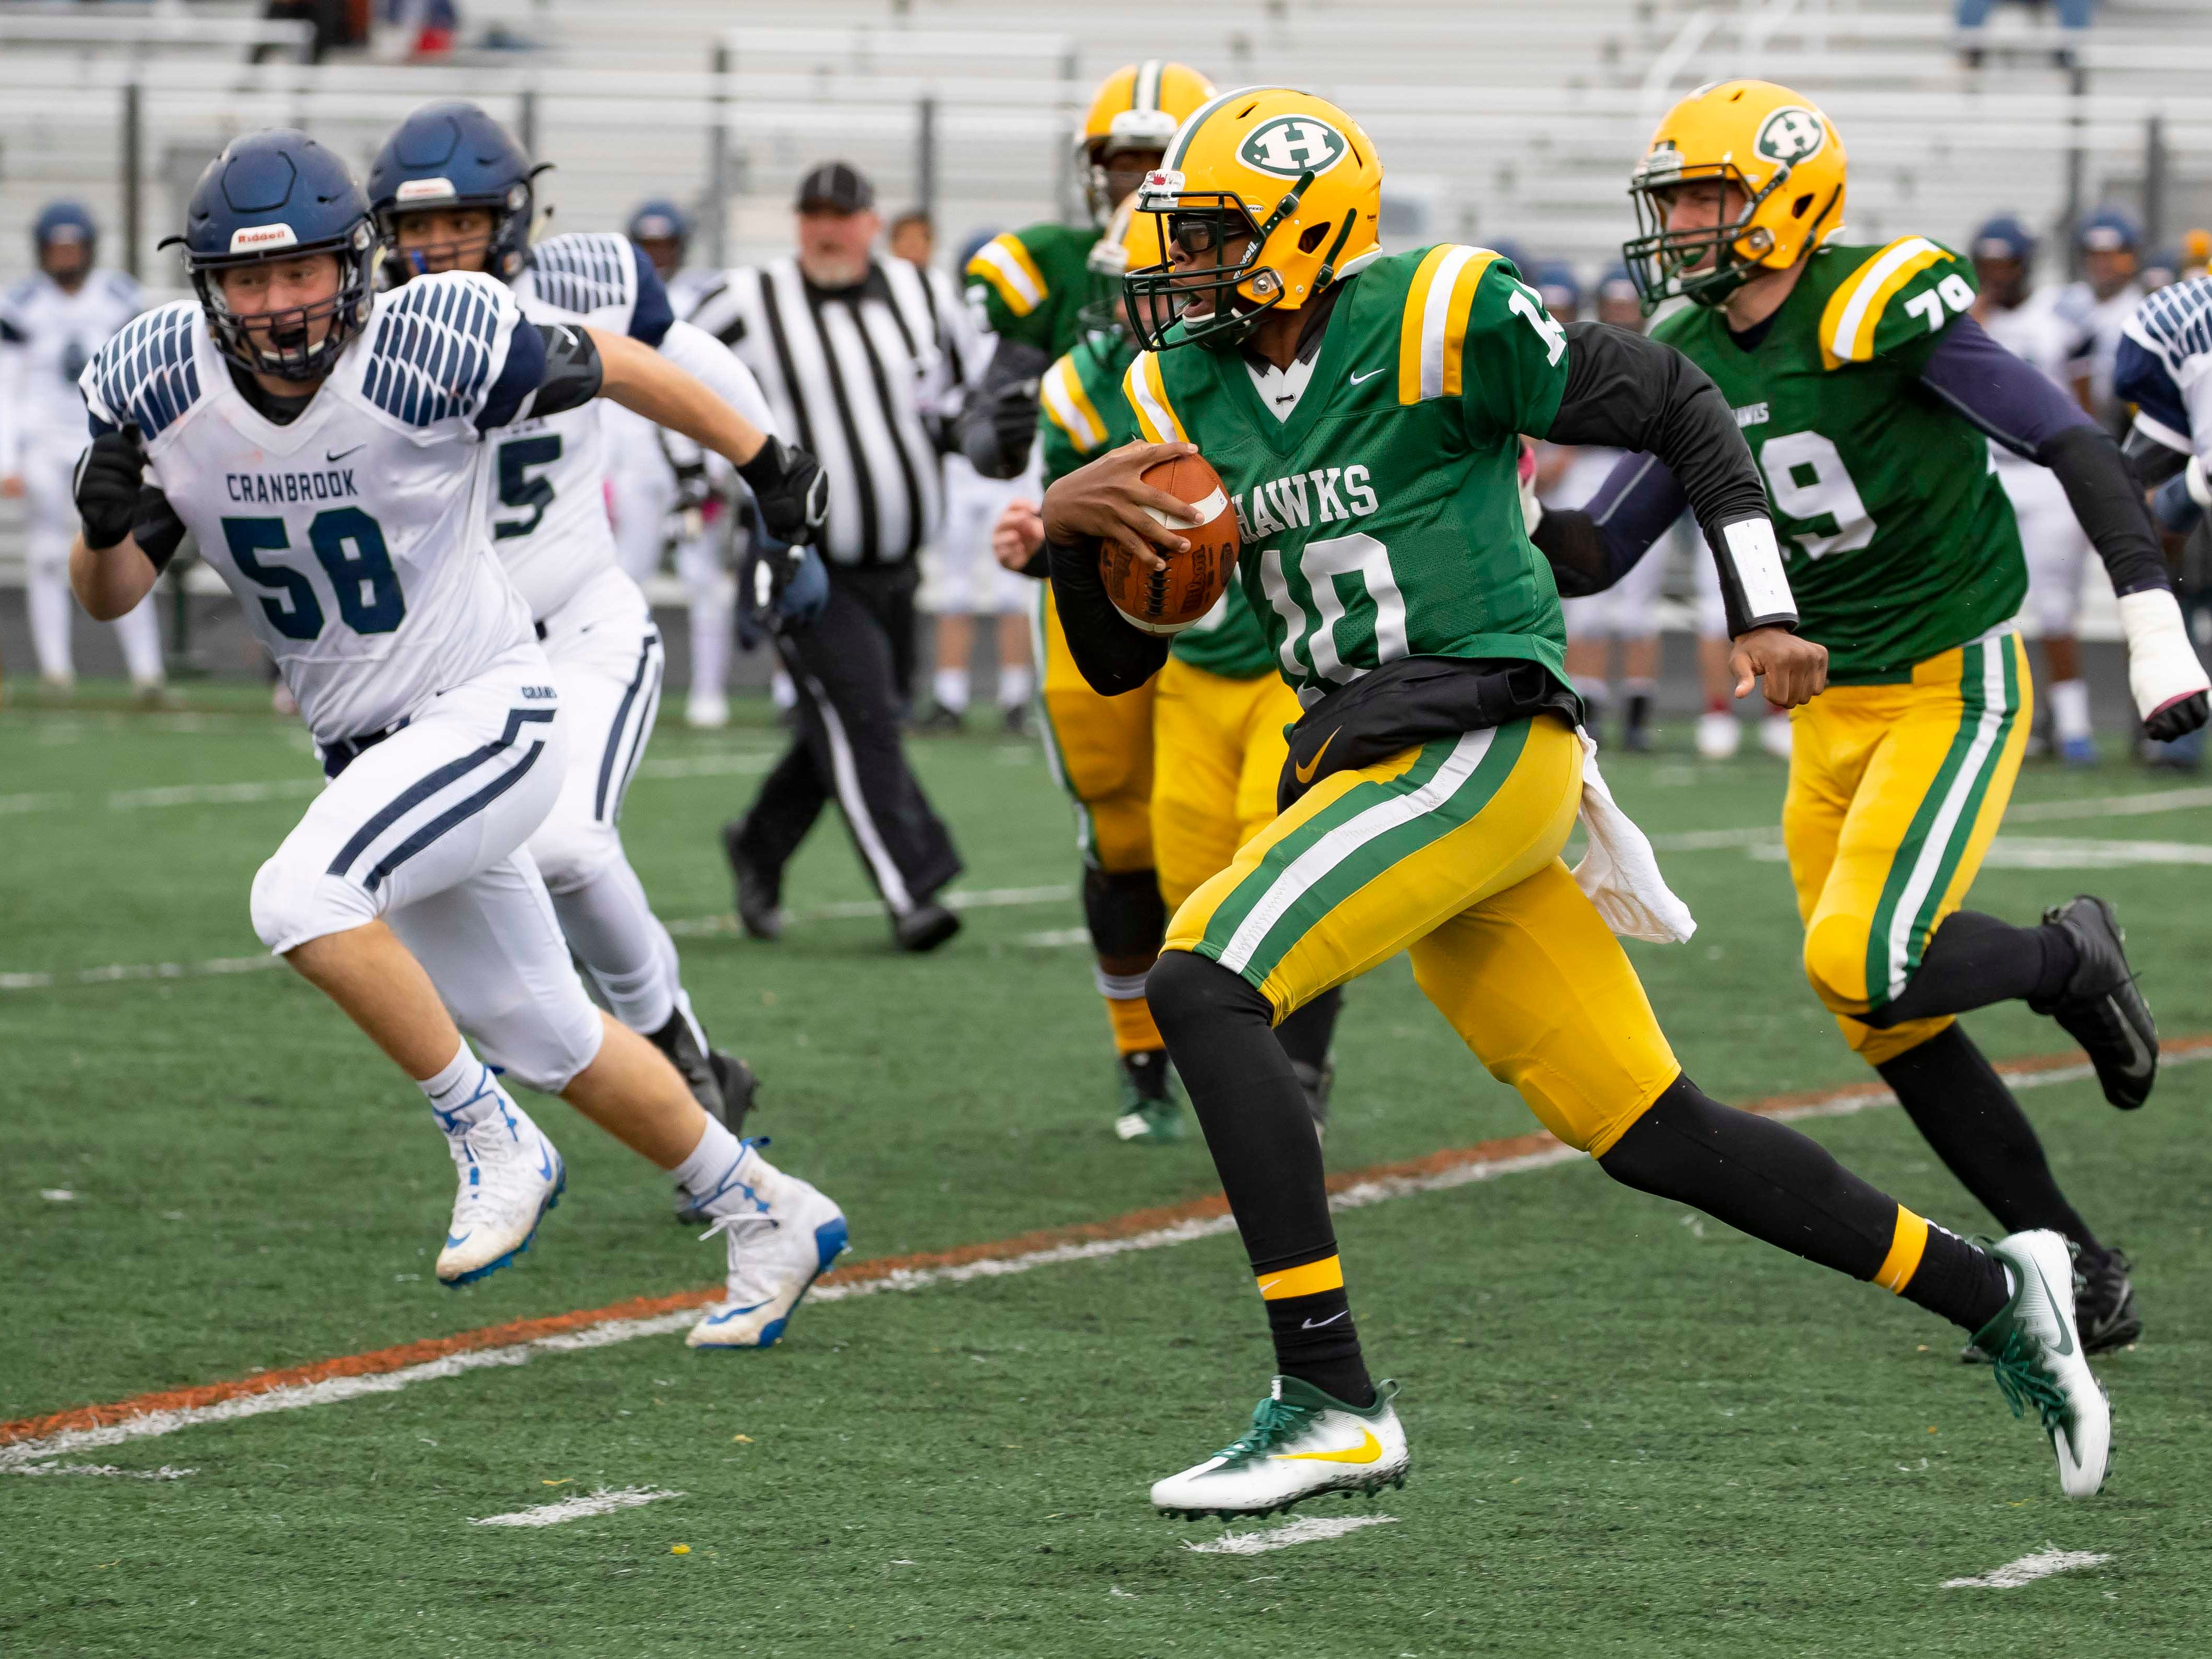 Keel Watson (10) of the Farmington Hills Harrison Hawks runs the with the football as William Kerr (58) of Cranbrook Kingswood pursues in the first half.